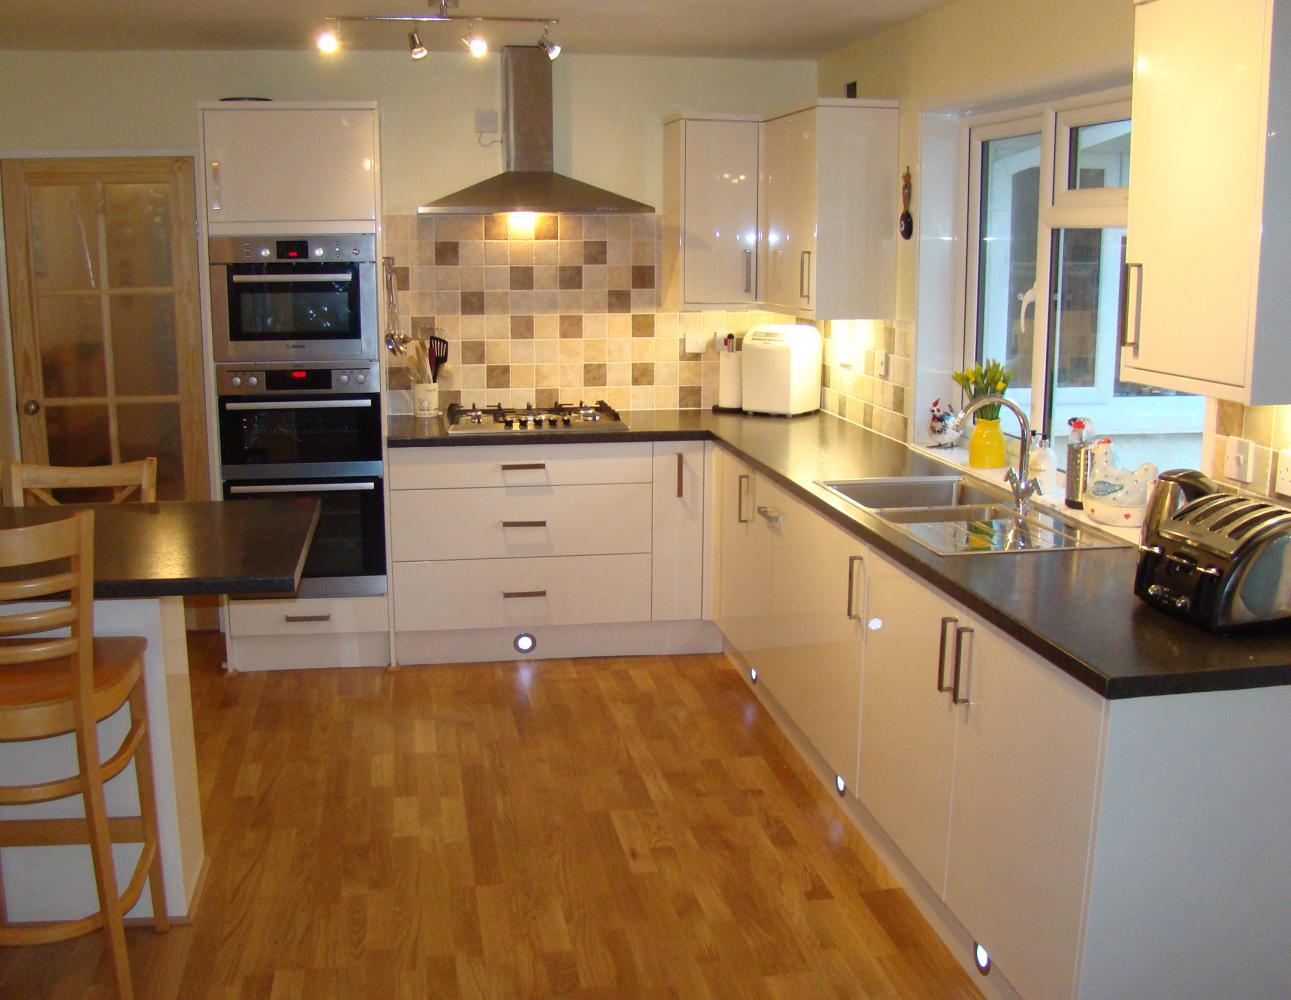 Magnificent welcome to radford plumbing kitchen and bathroom fitting we have over  1291 x 1000 · 127 kB · jpeg